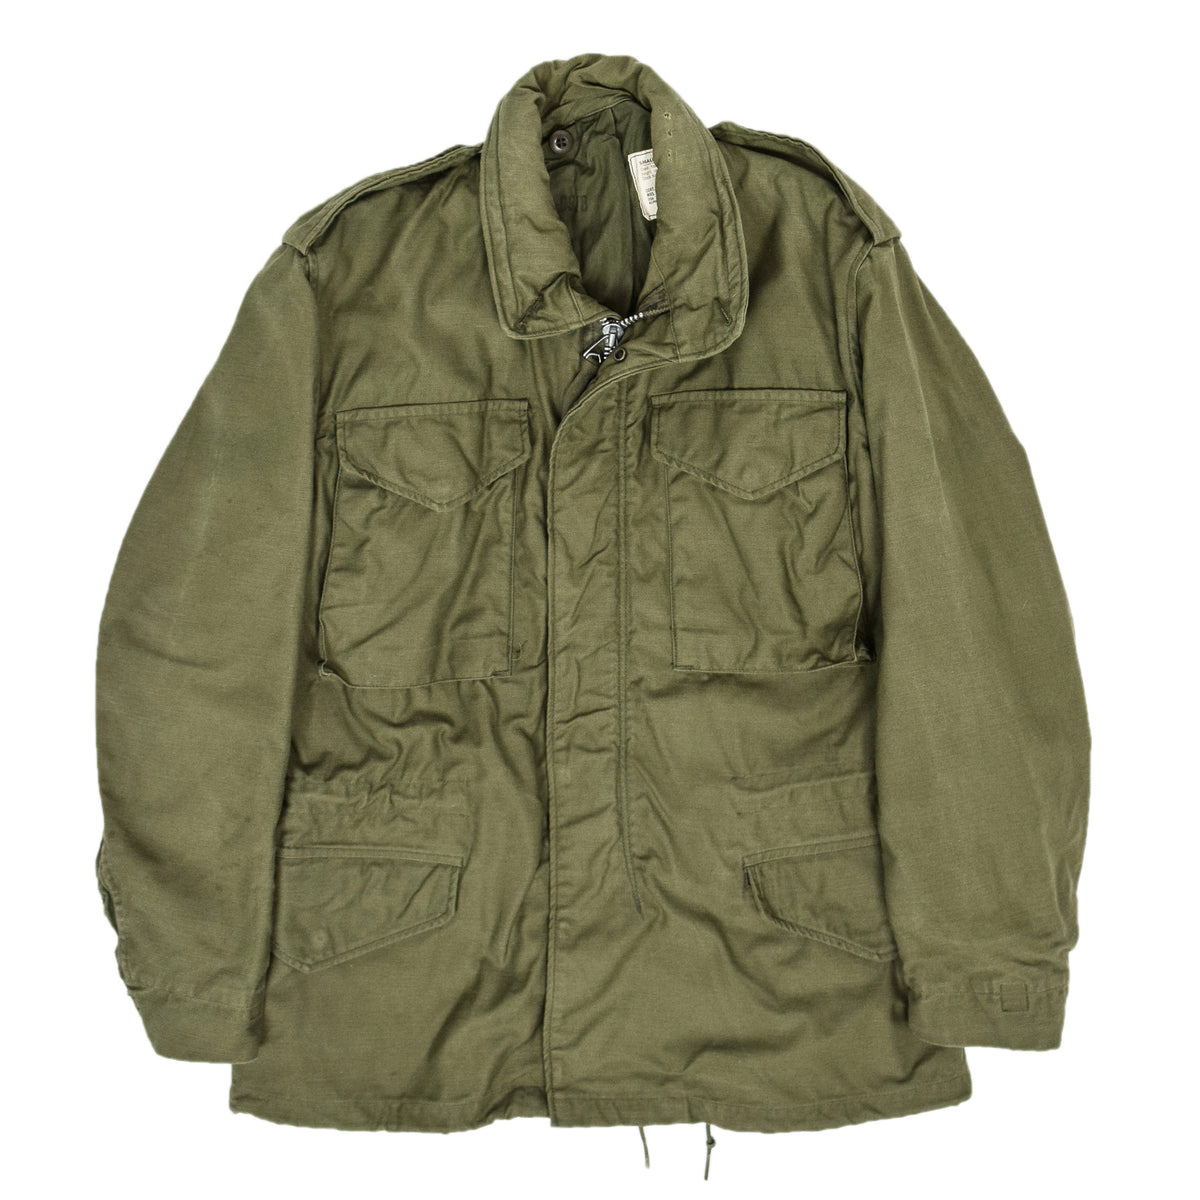 Vintage 70s Alpha Industries Vietnam M-65 Man's Field Military Jacket Green S Short front